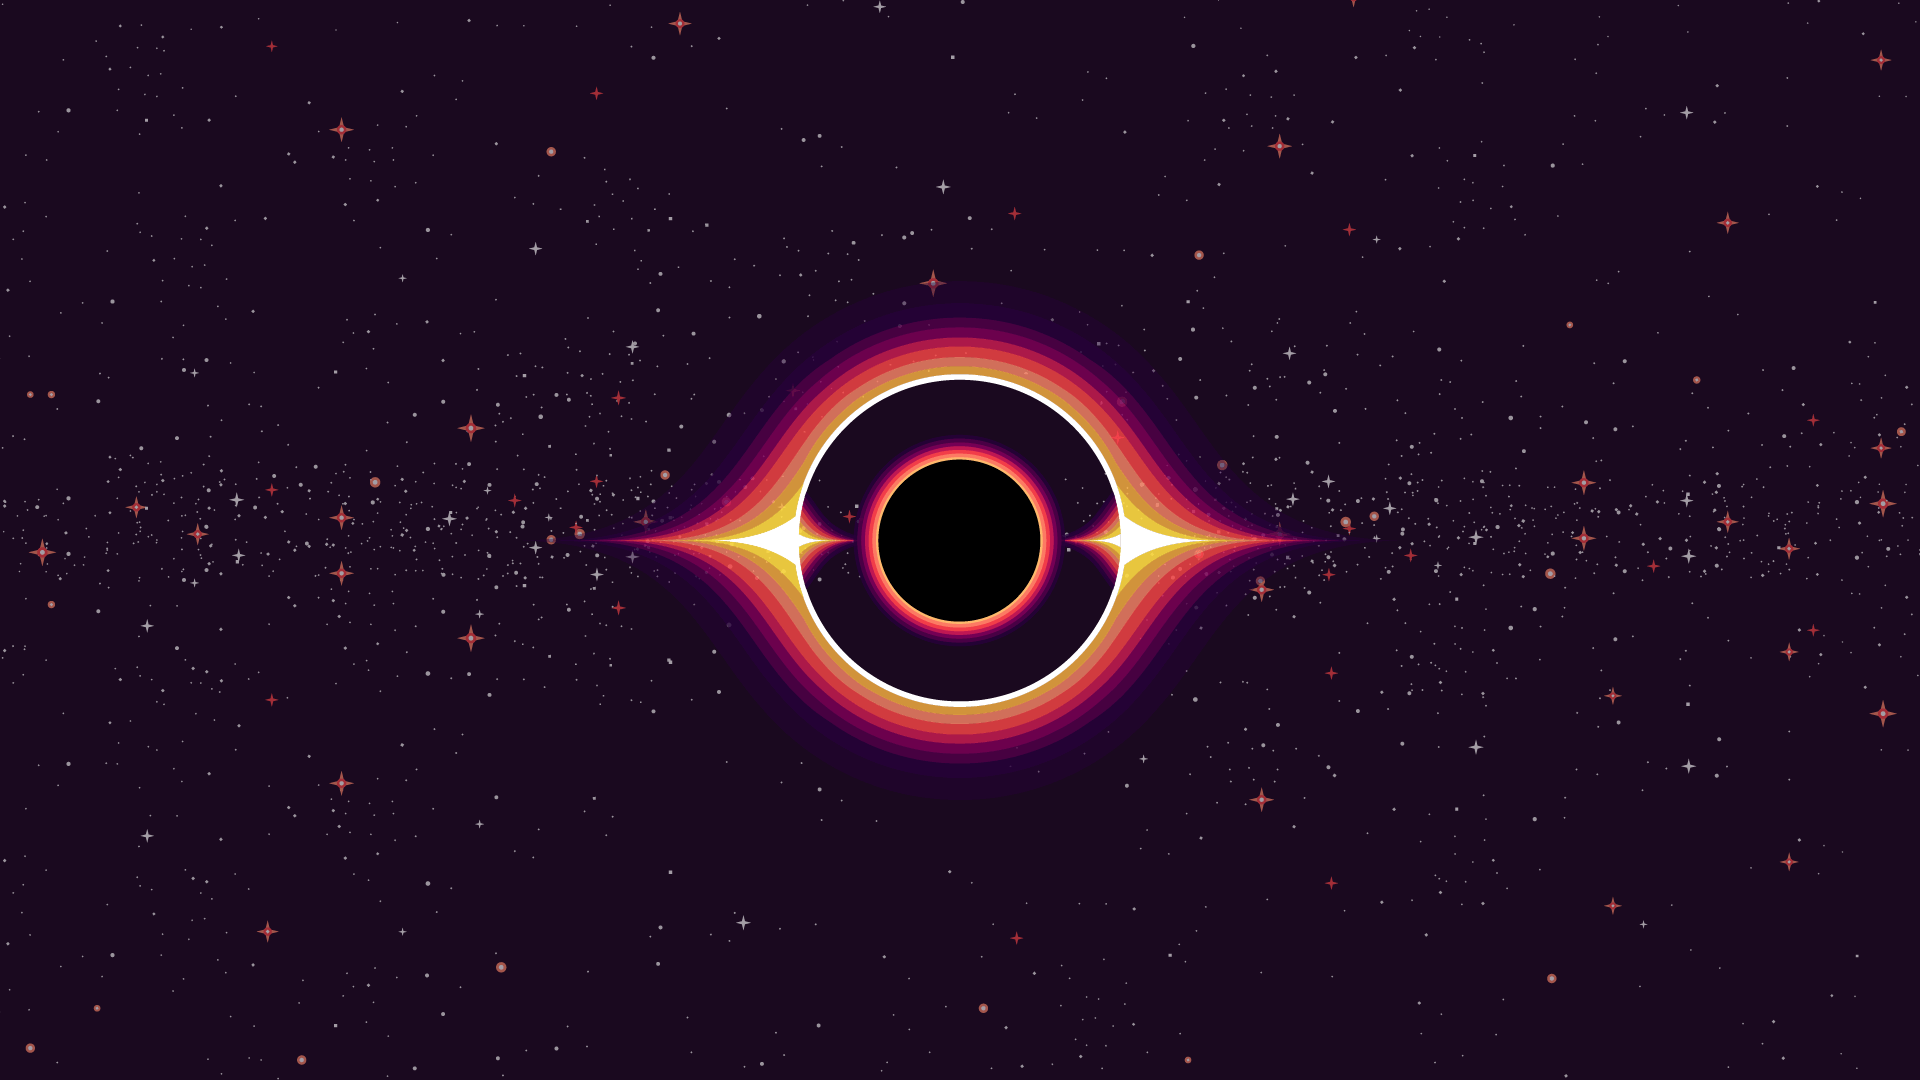 080_Website Project Black Holes_Kurzgesagt Project Pic 6